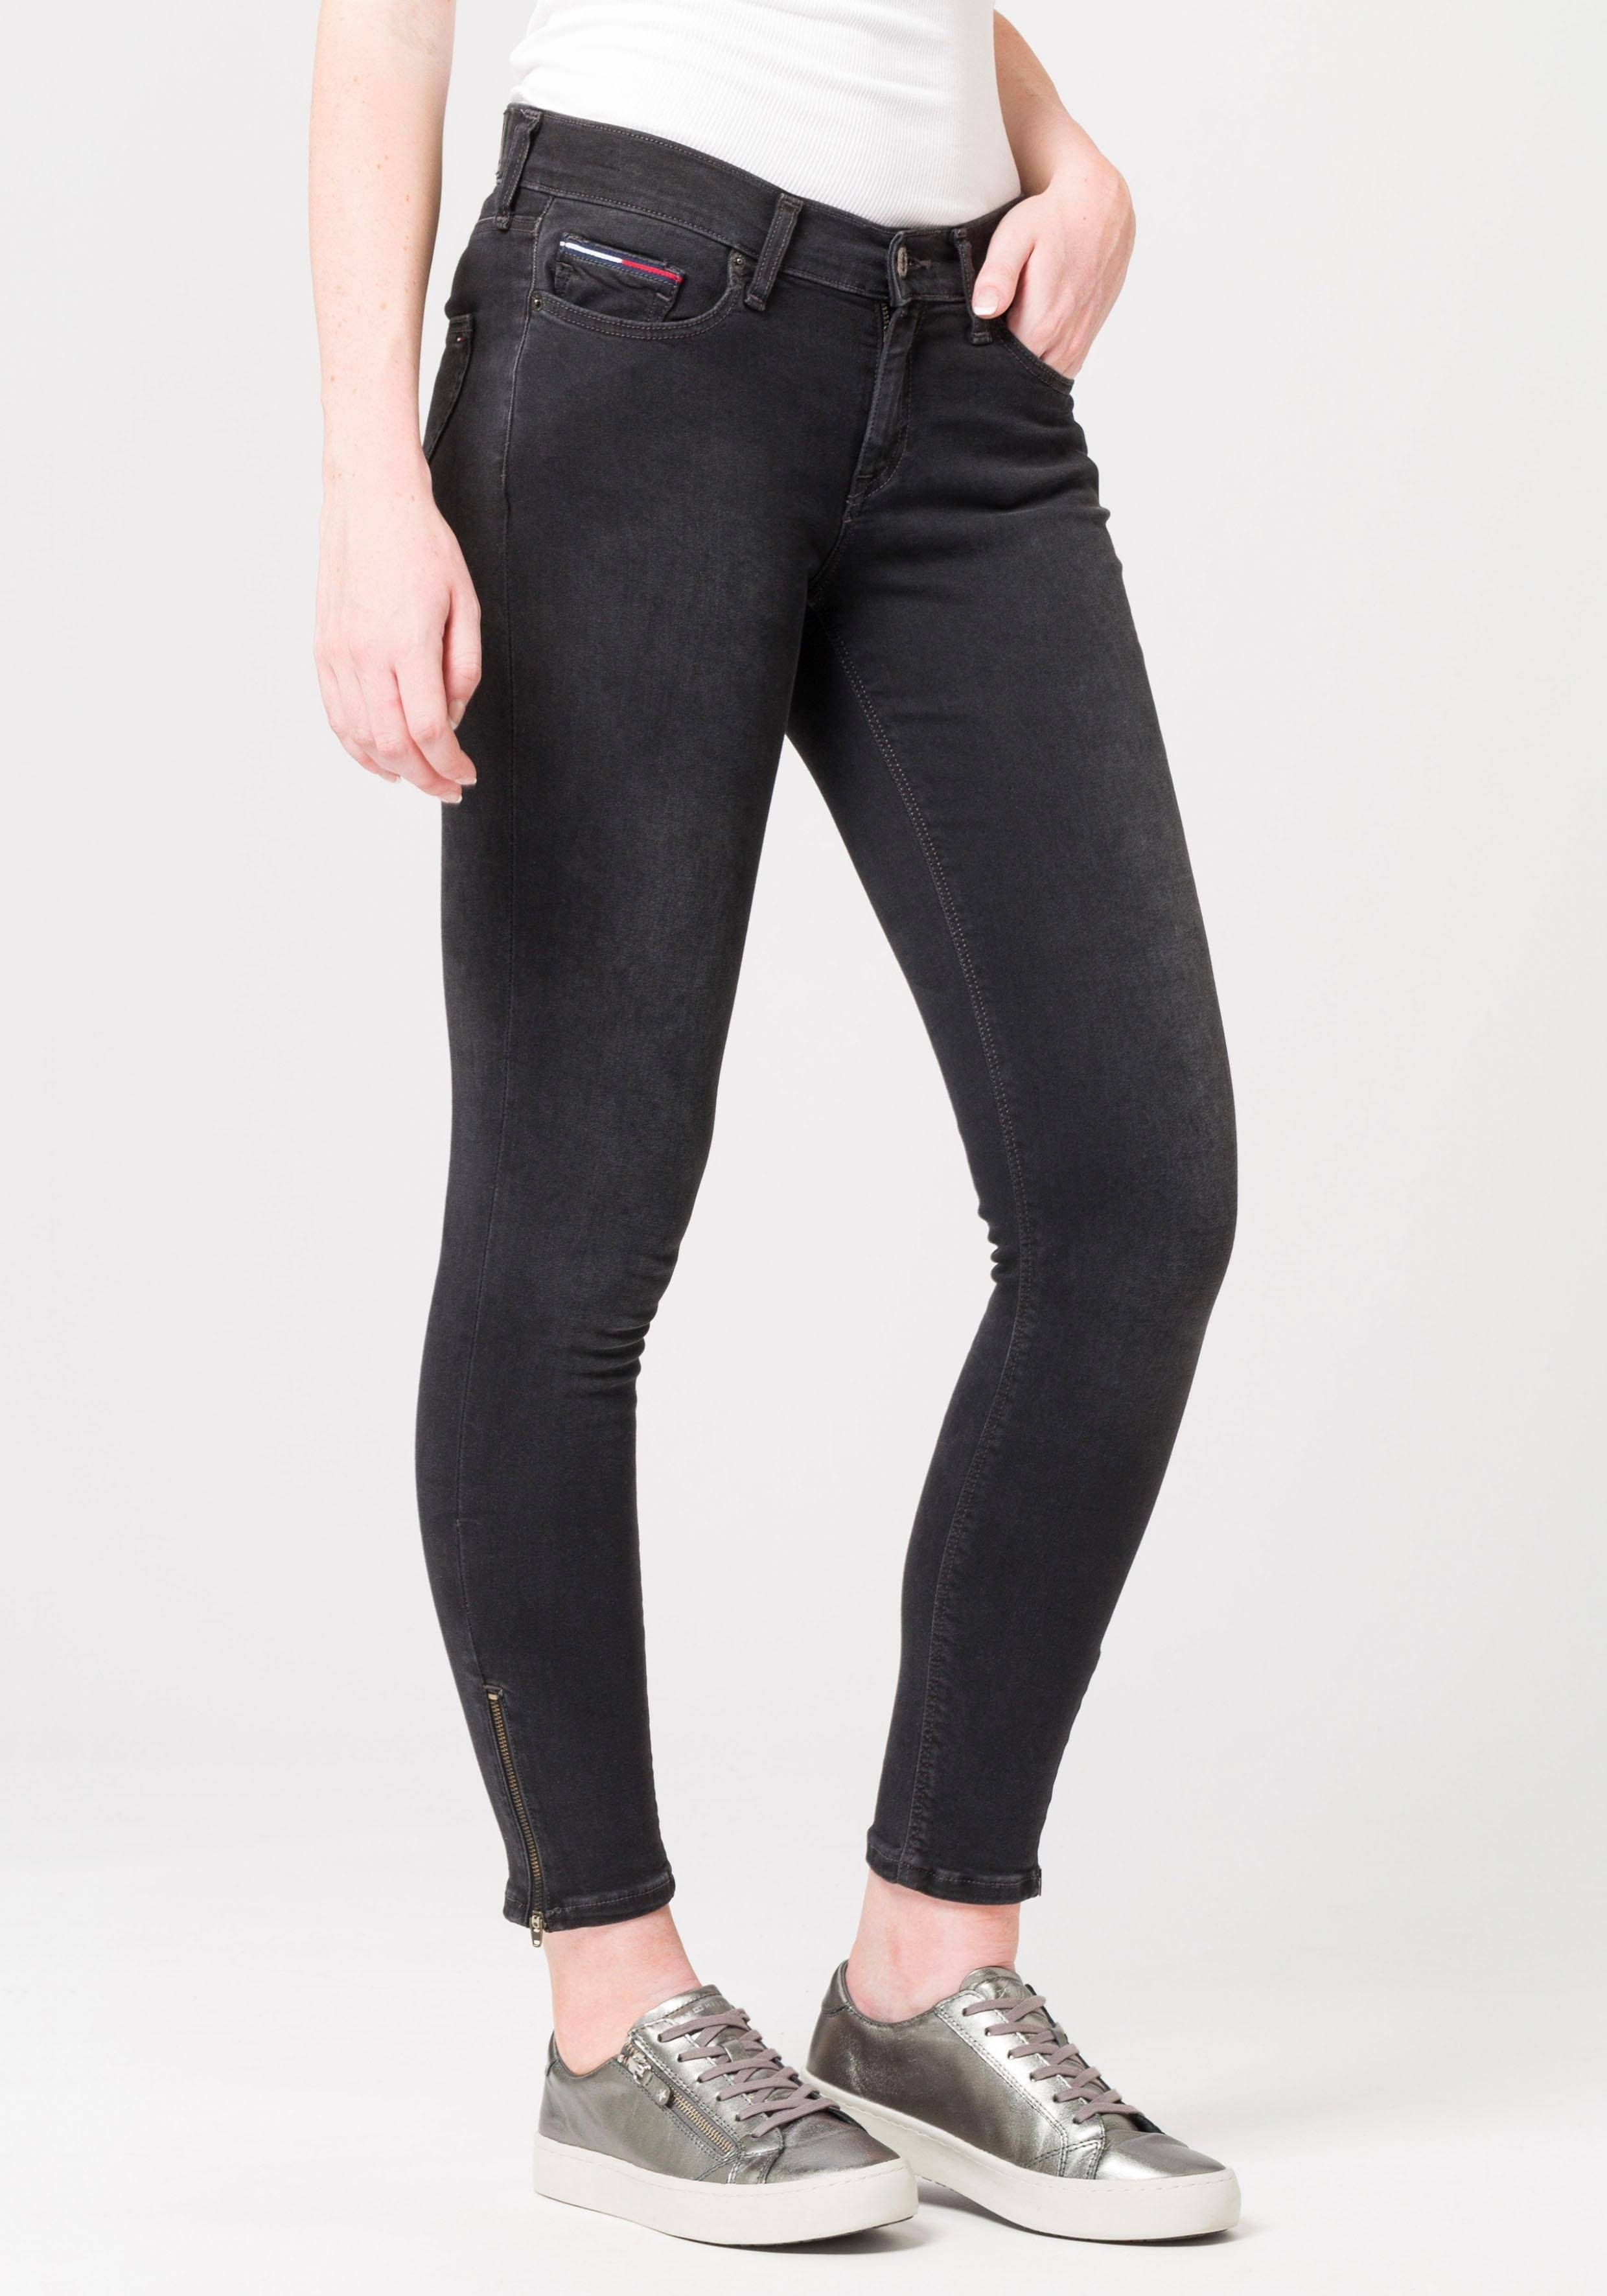 TOMMY JEANS Jeans »MID RISE SKINNY NORA 7/8 ZIP CUBLST«, CURTIS BLACK STRETCH